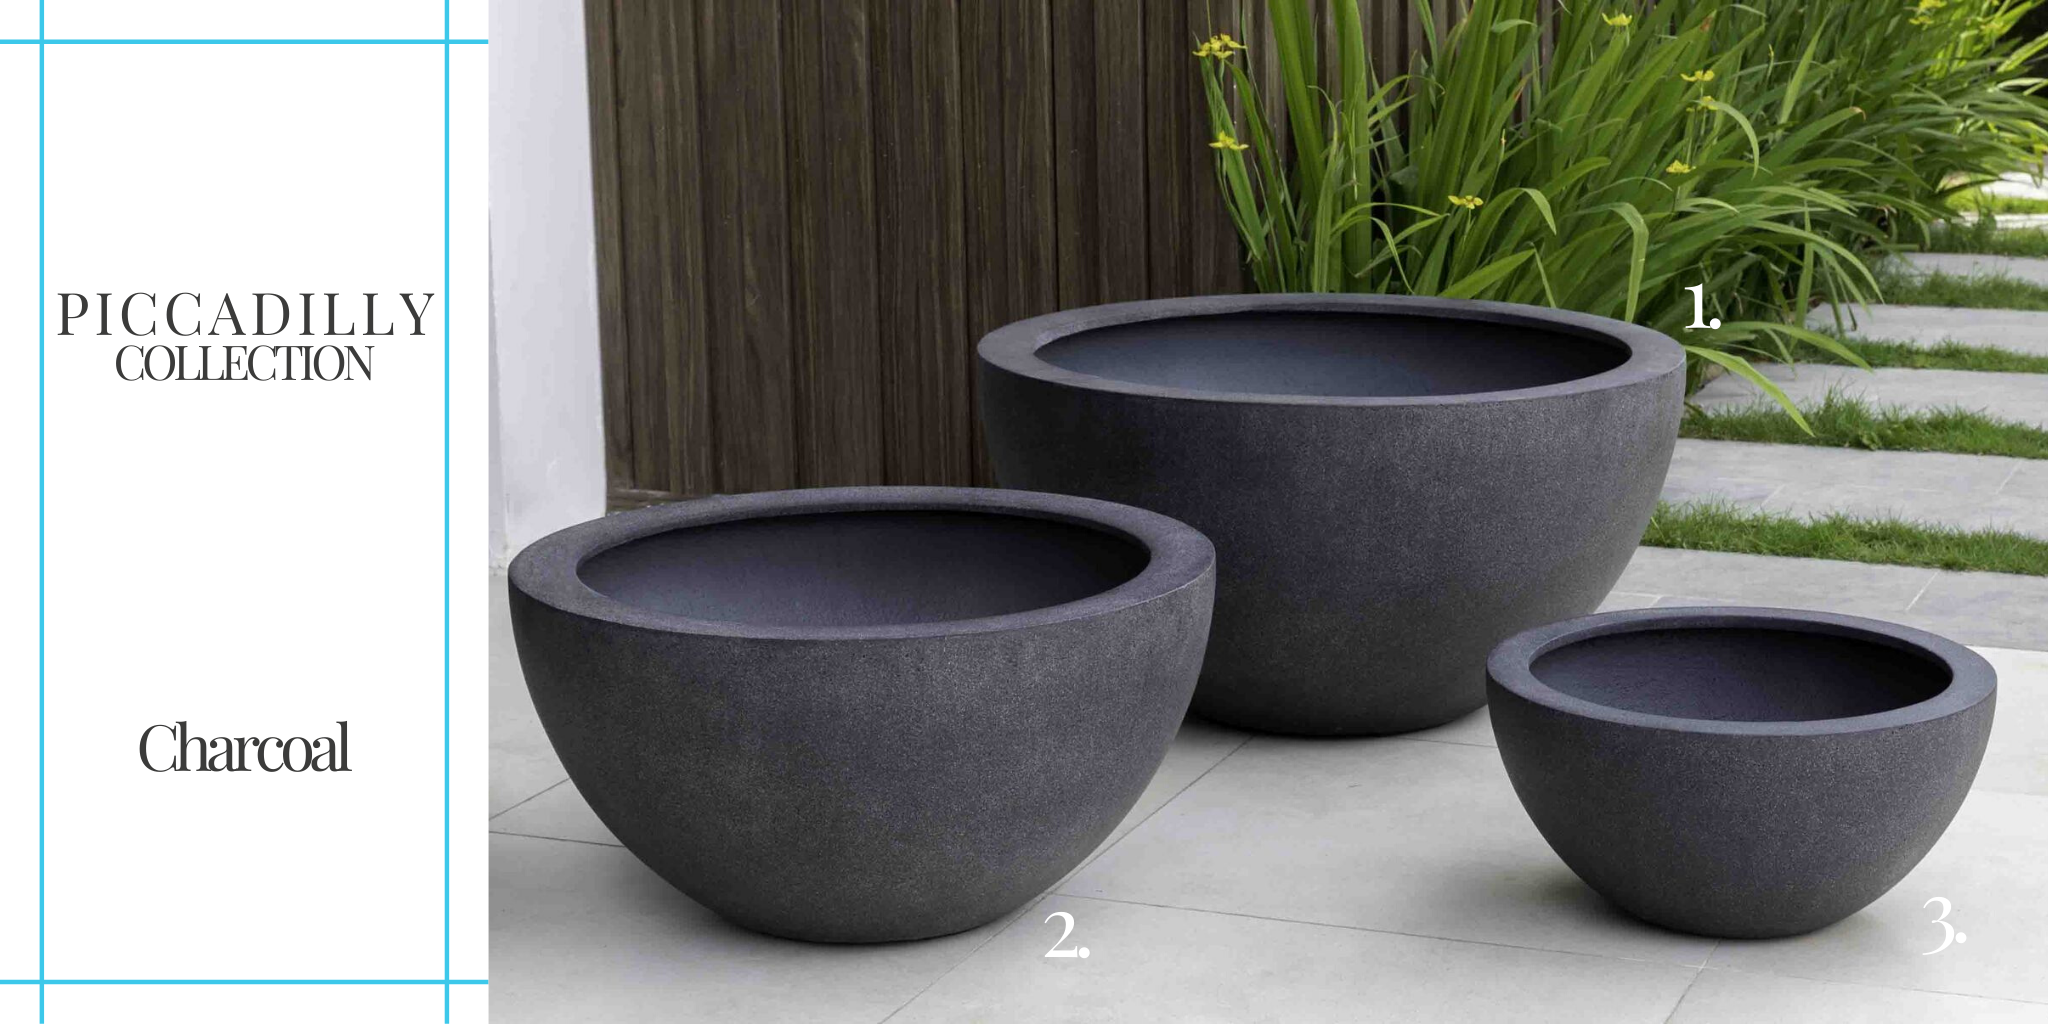 piccadilly-lite planter-collection-charcoal from Campania